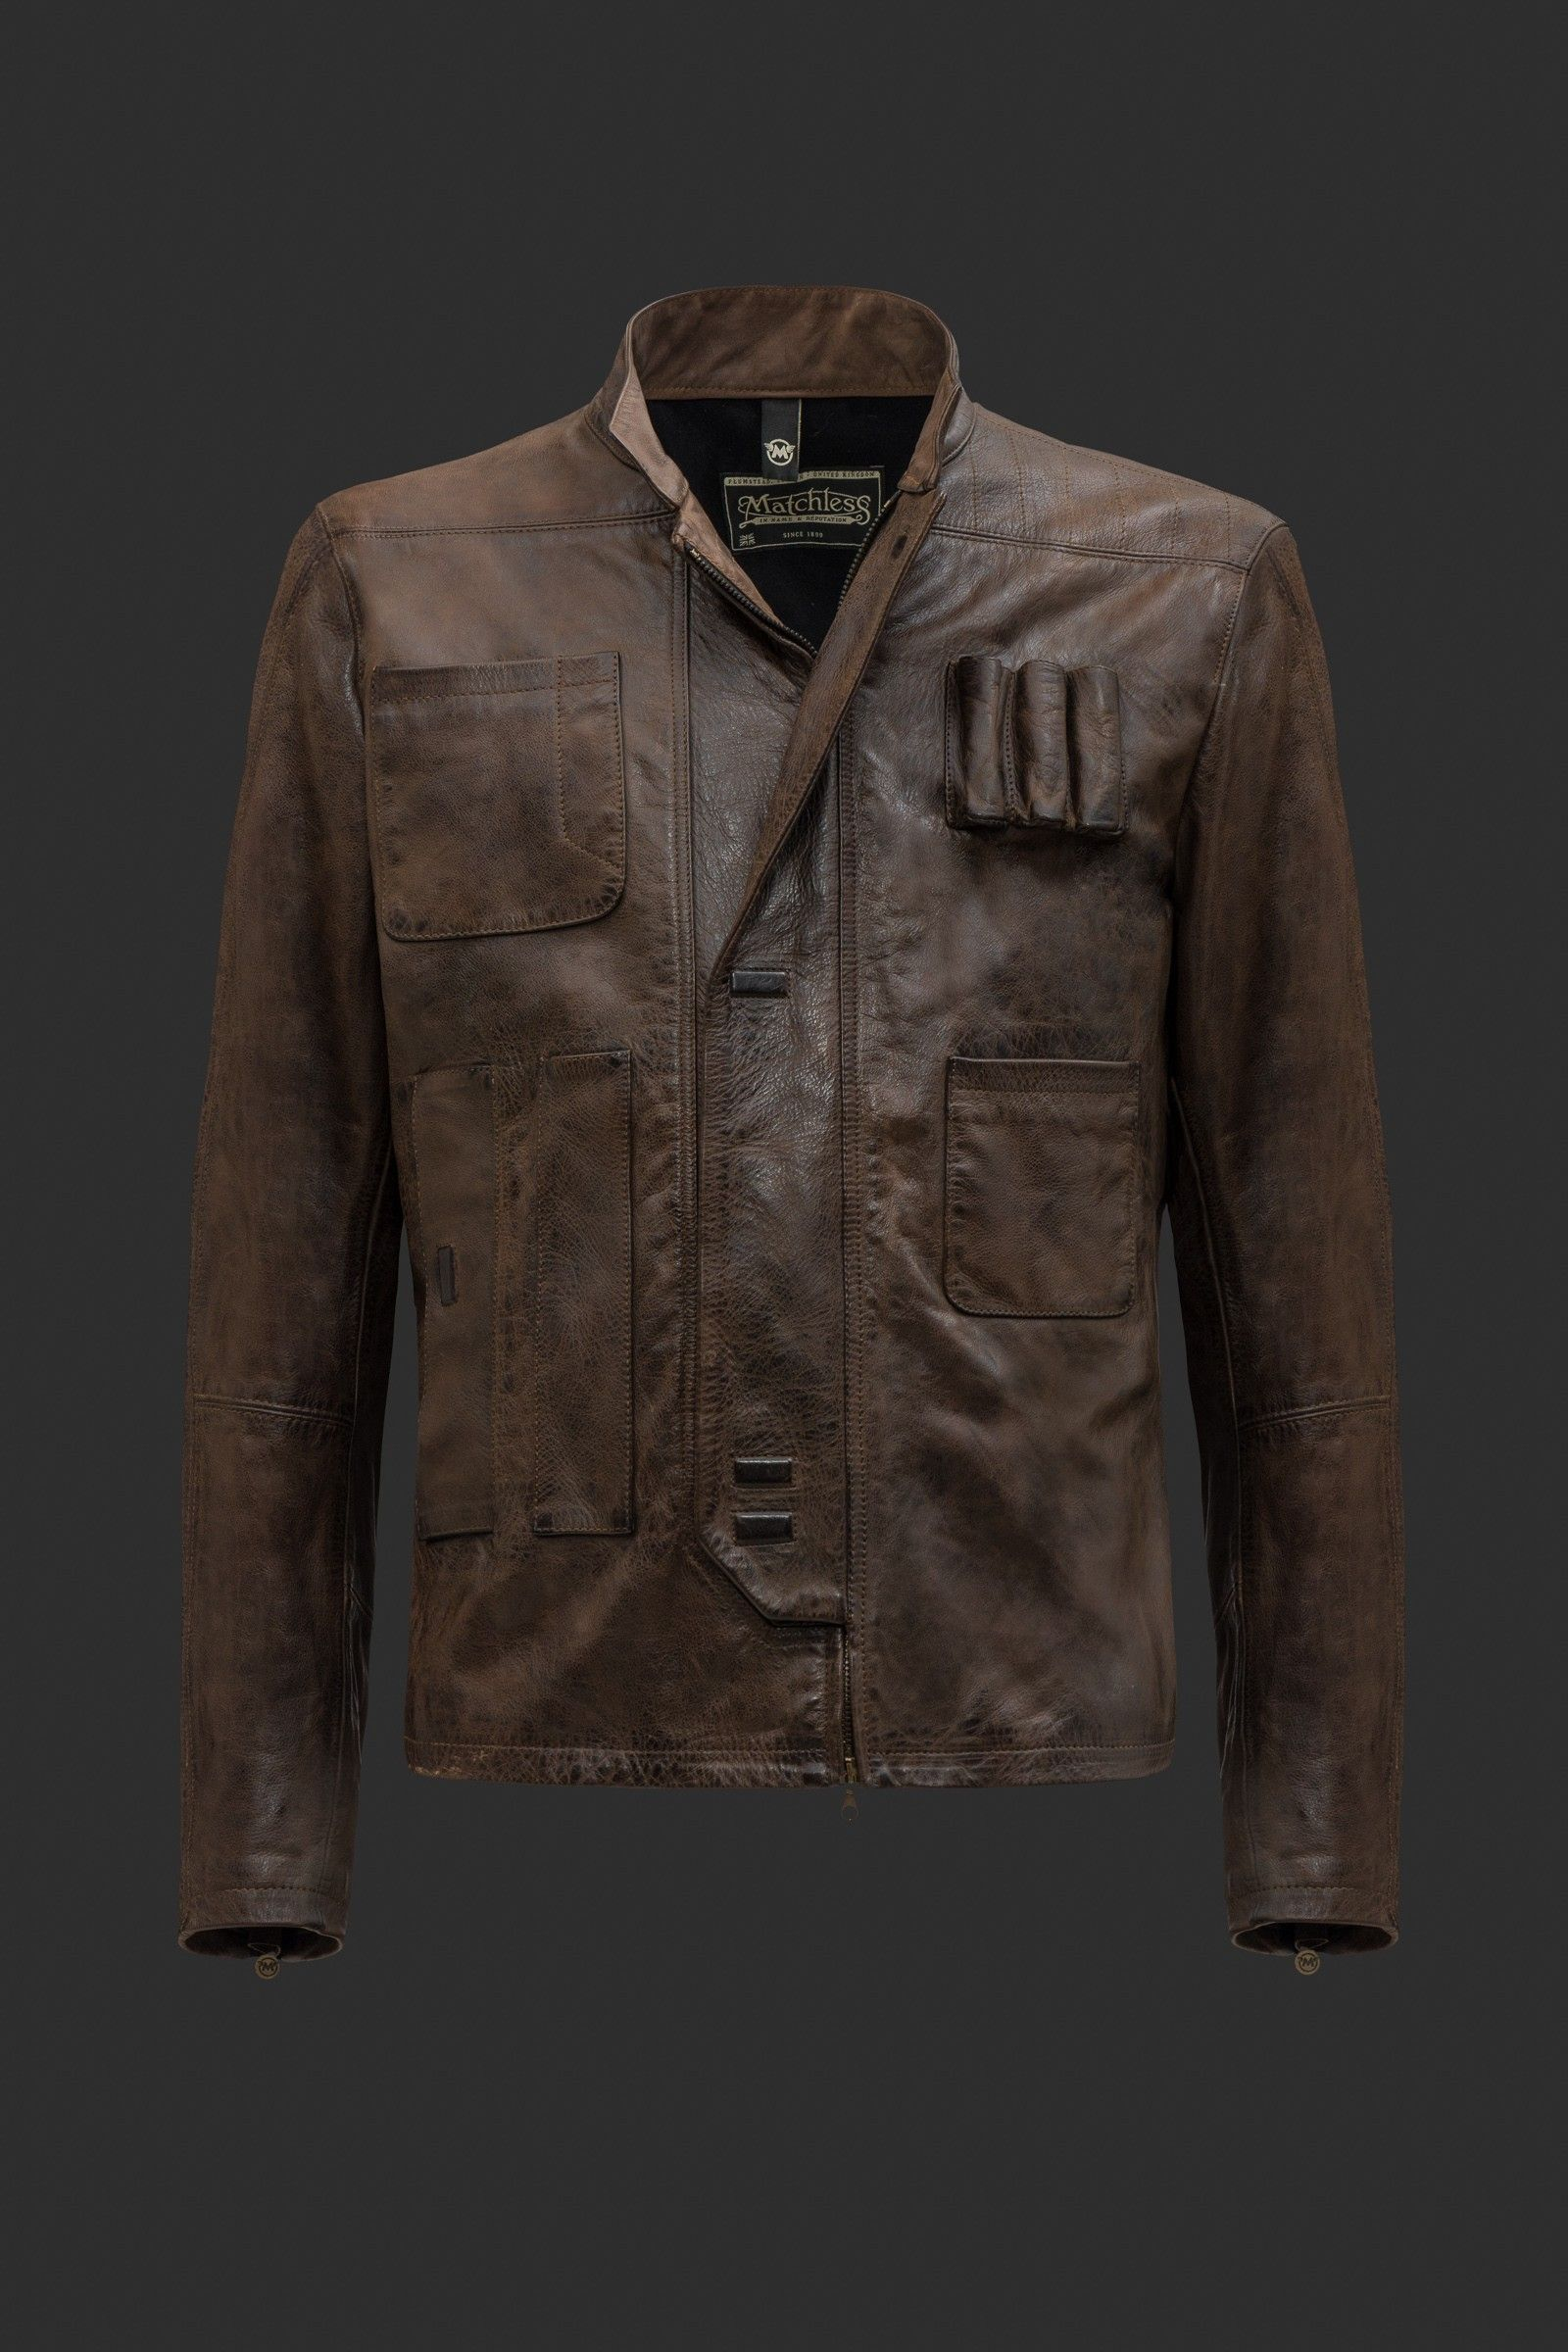 Pin by EmeralArcherAC on Harrison Ford Leather jacket